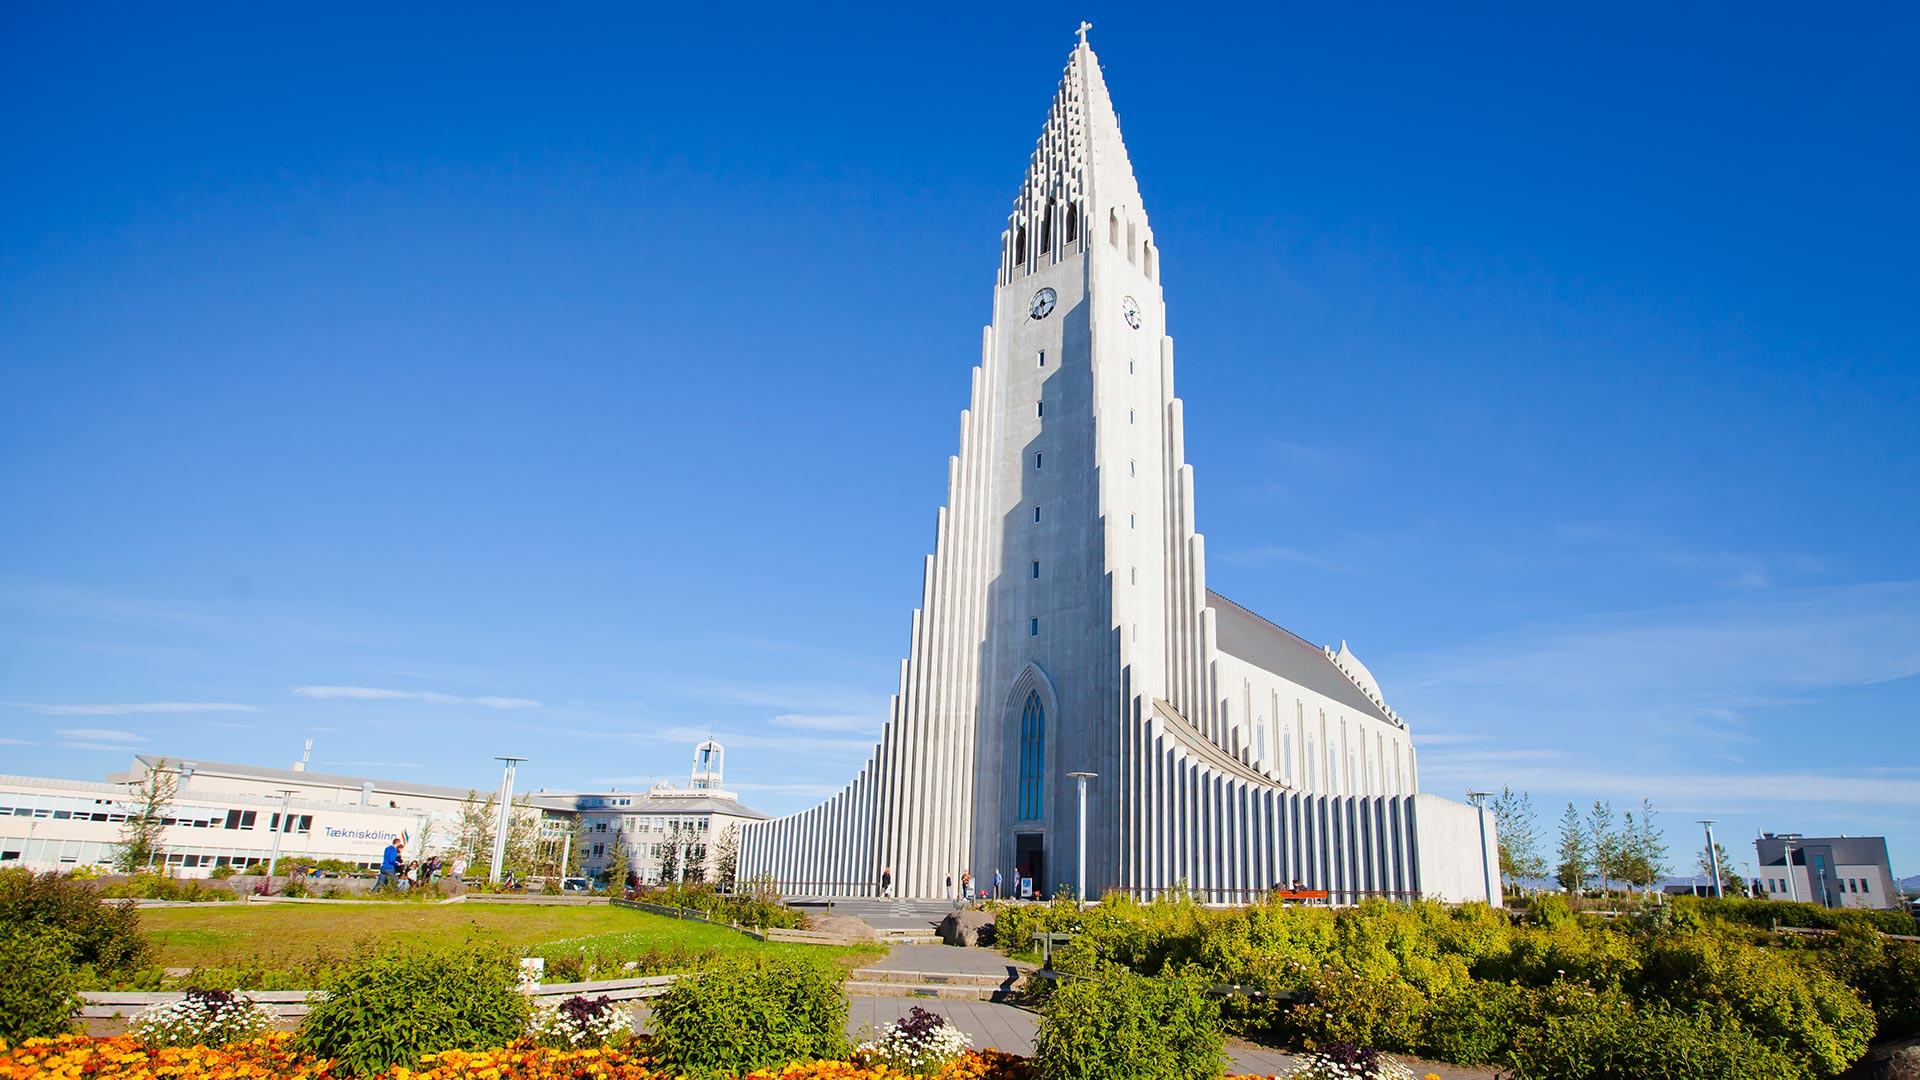 South Amp West Iceland Classic 8 Days 7 Nights Iceland Self Drive Tours Nordic Visitor